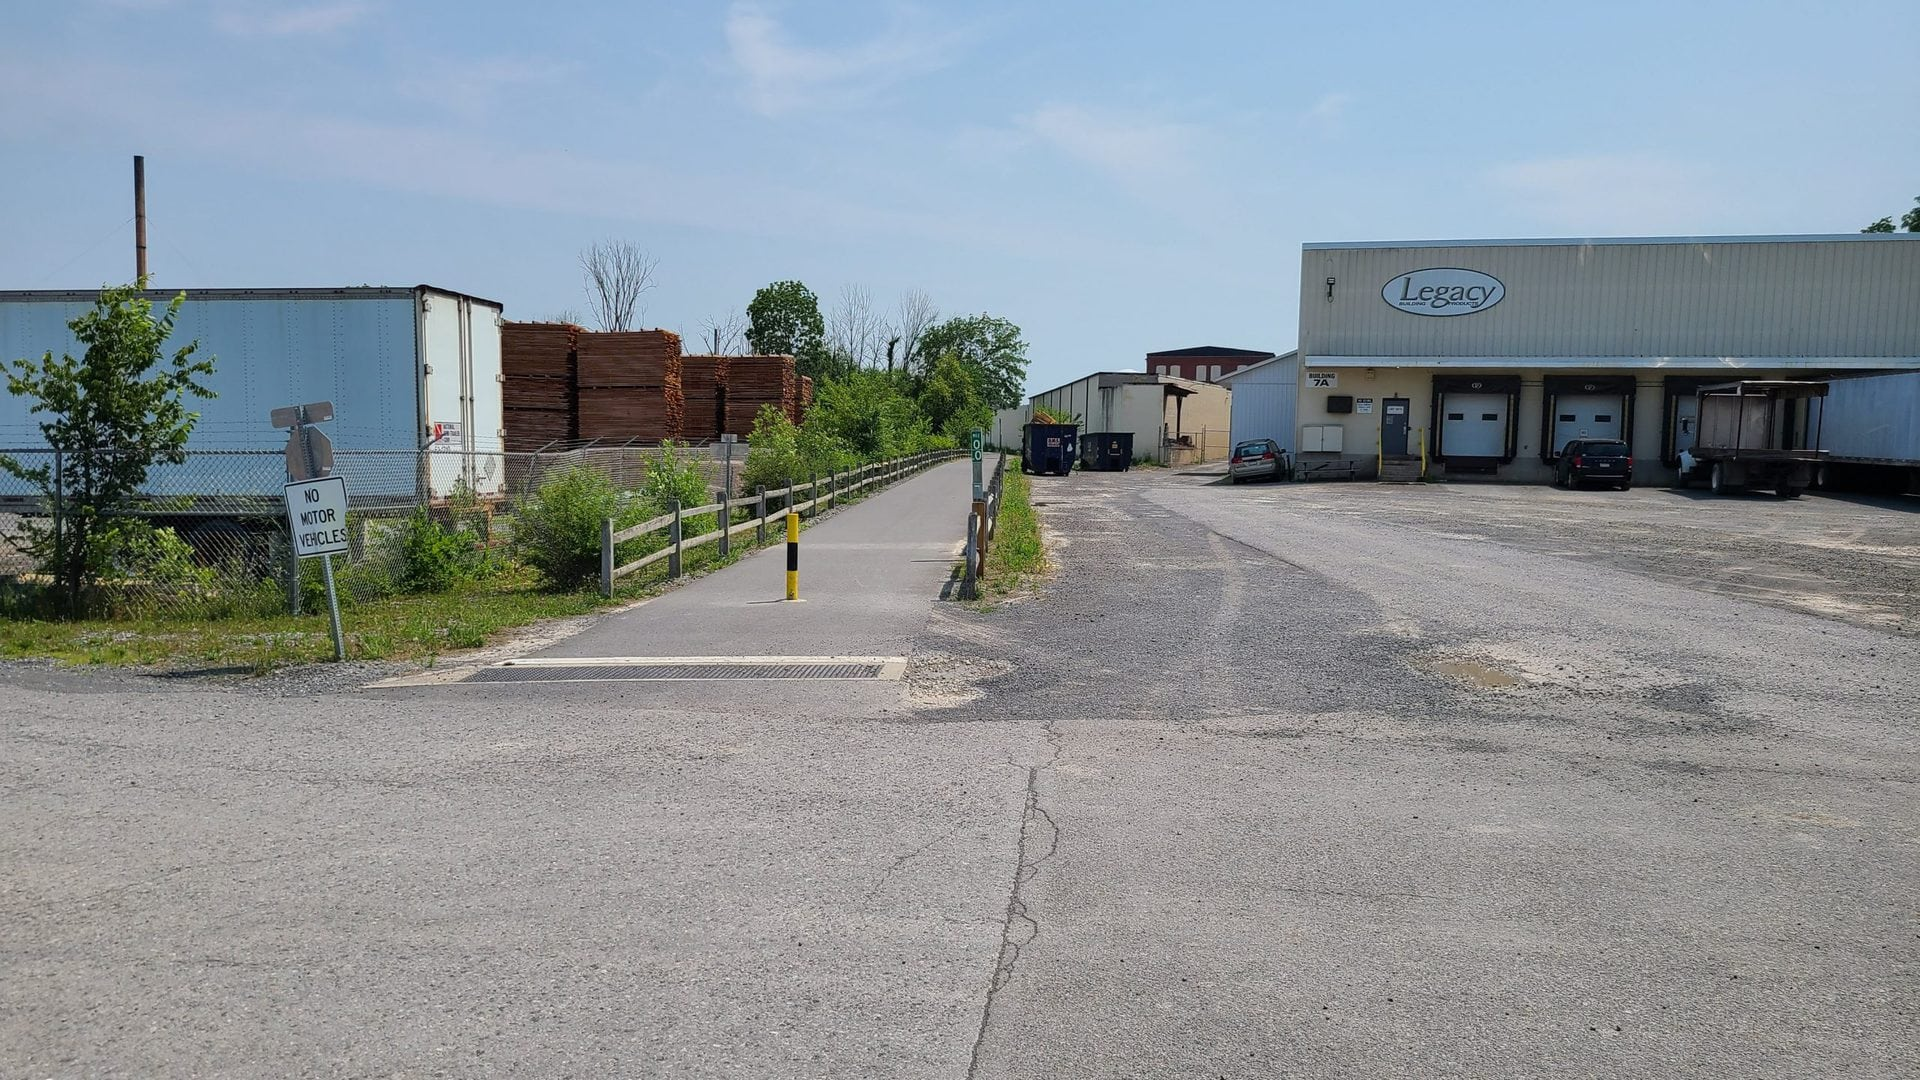 """The rail trail ends in paved parking lot. A wooden fence separates the trail from an industrial area consisting of several warehouses and wood piles. A sign reads """"no motor vehicles"""" and a green mileage marker reads """"0.0"""", signifying the beginning of the trail."""